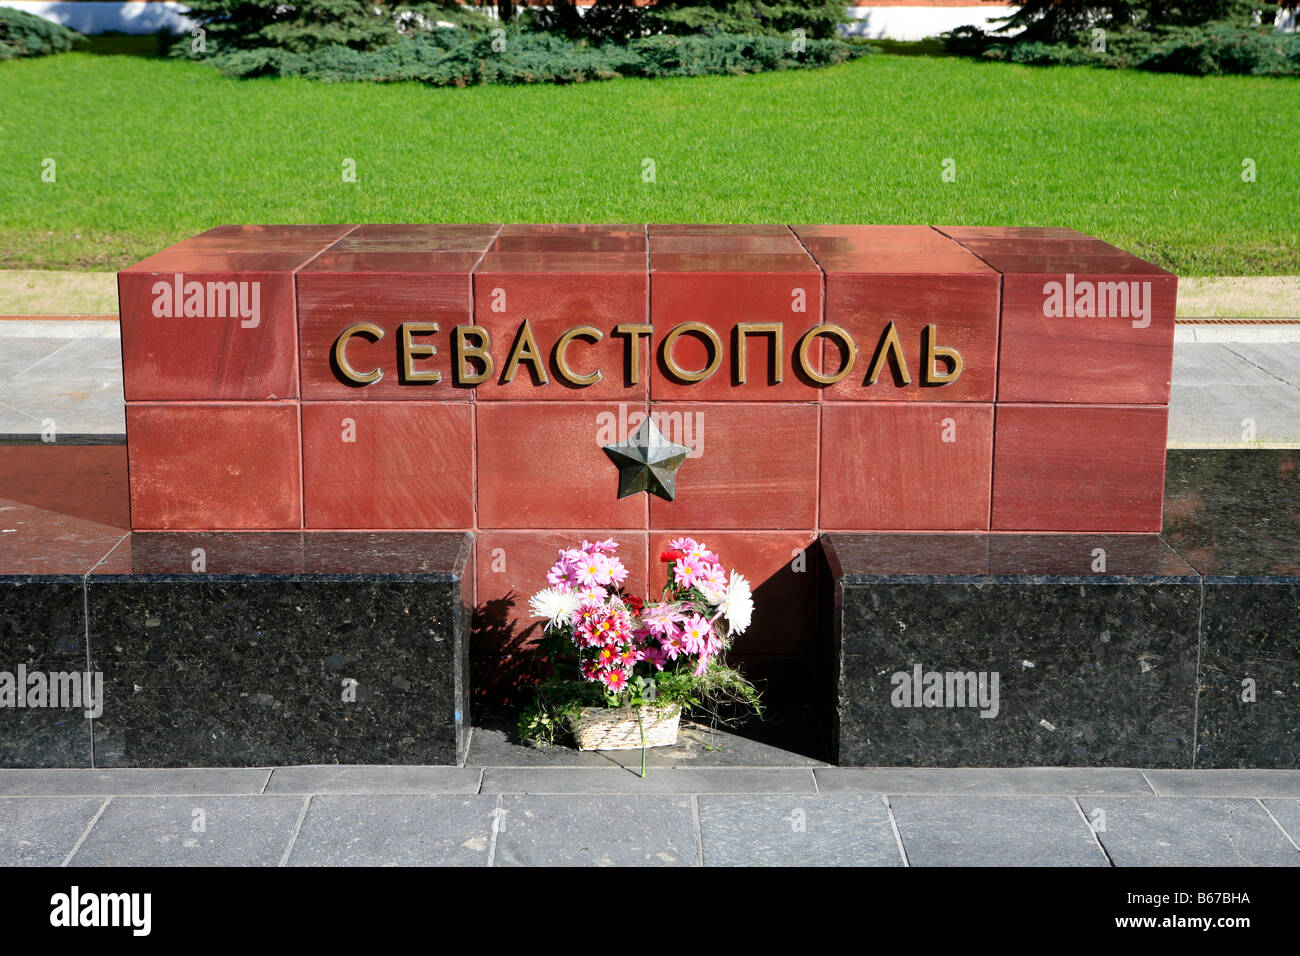 Memorial stone for World War II Hero City Sevastopol near the Tomb of the Unknown Soldier in Alexander Garden, Moscow, - Stock Image